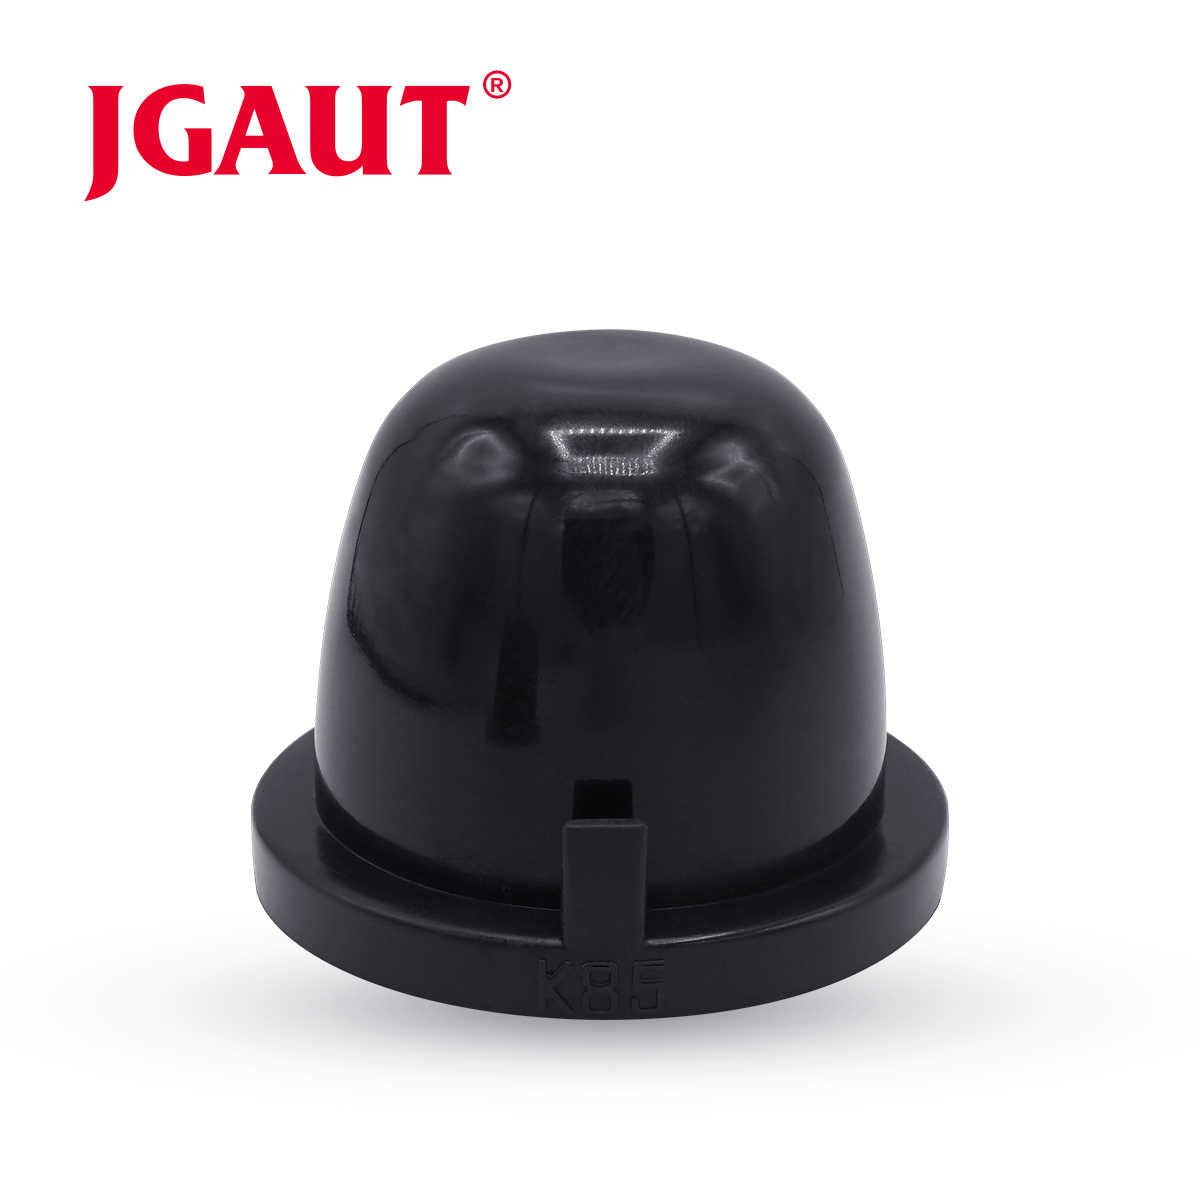 JGAUT K85 85mm X 68mm 1PCS HID LED Headlight Headlamp Dust Cover Cap Rubber Waterproof Dustproof Sealing